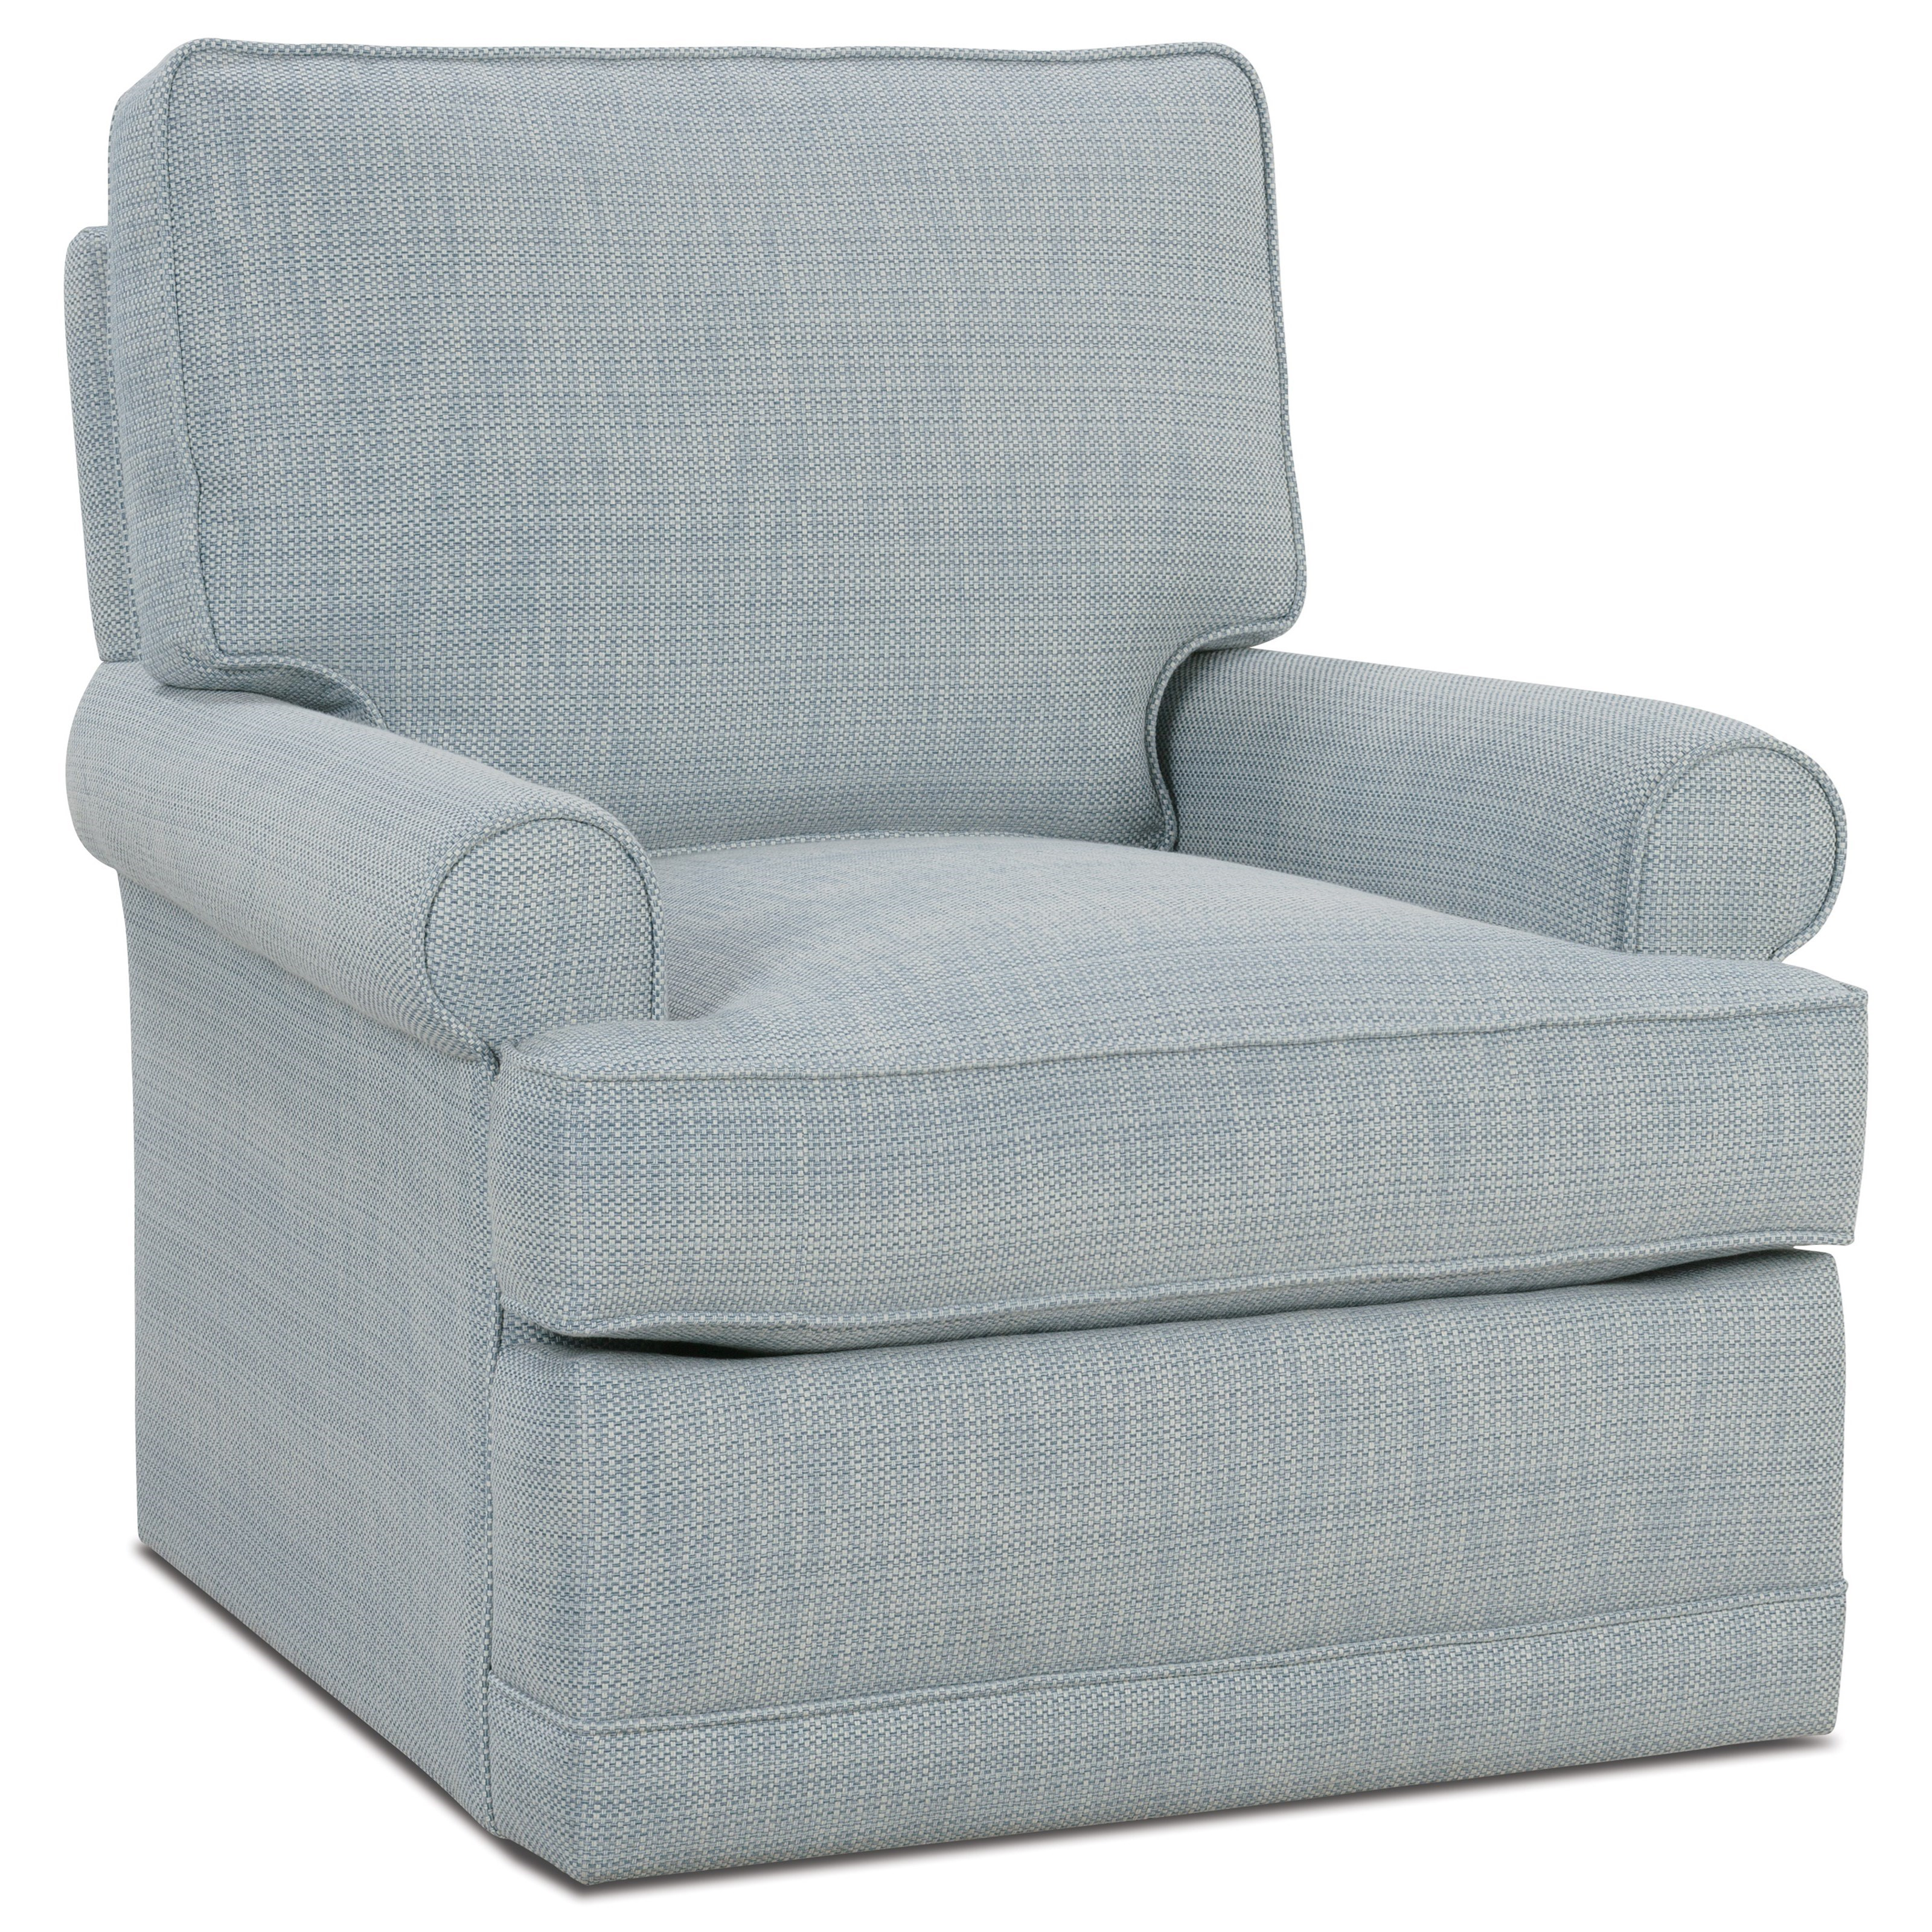 Sully Small Swivel Glider by Rowe at Baer's Furniture